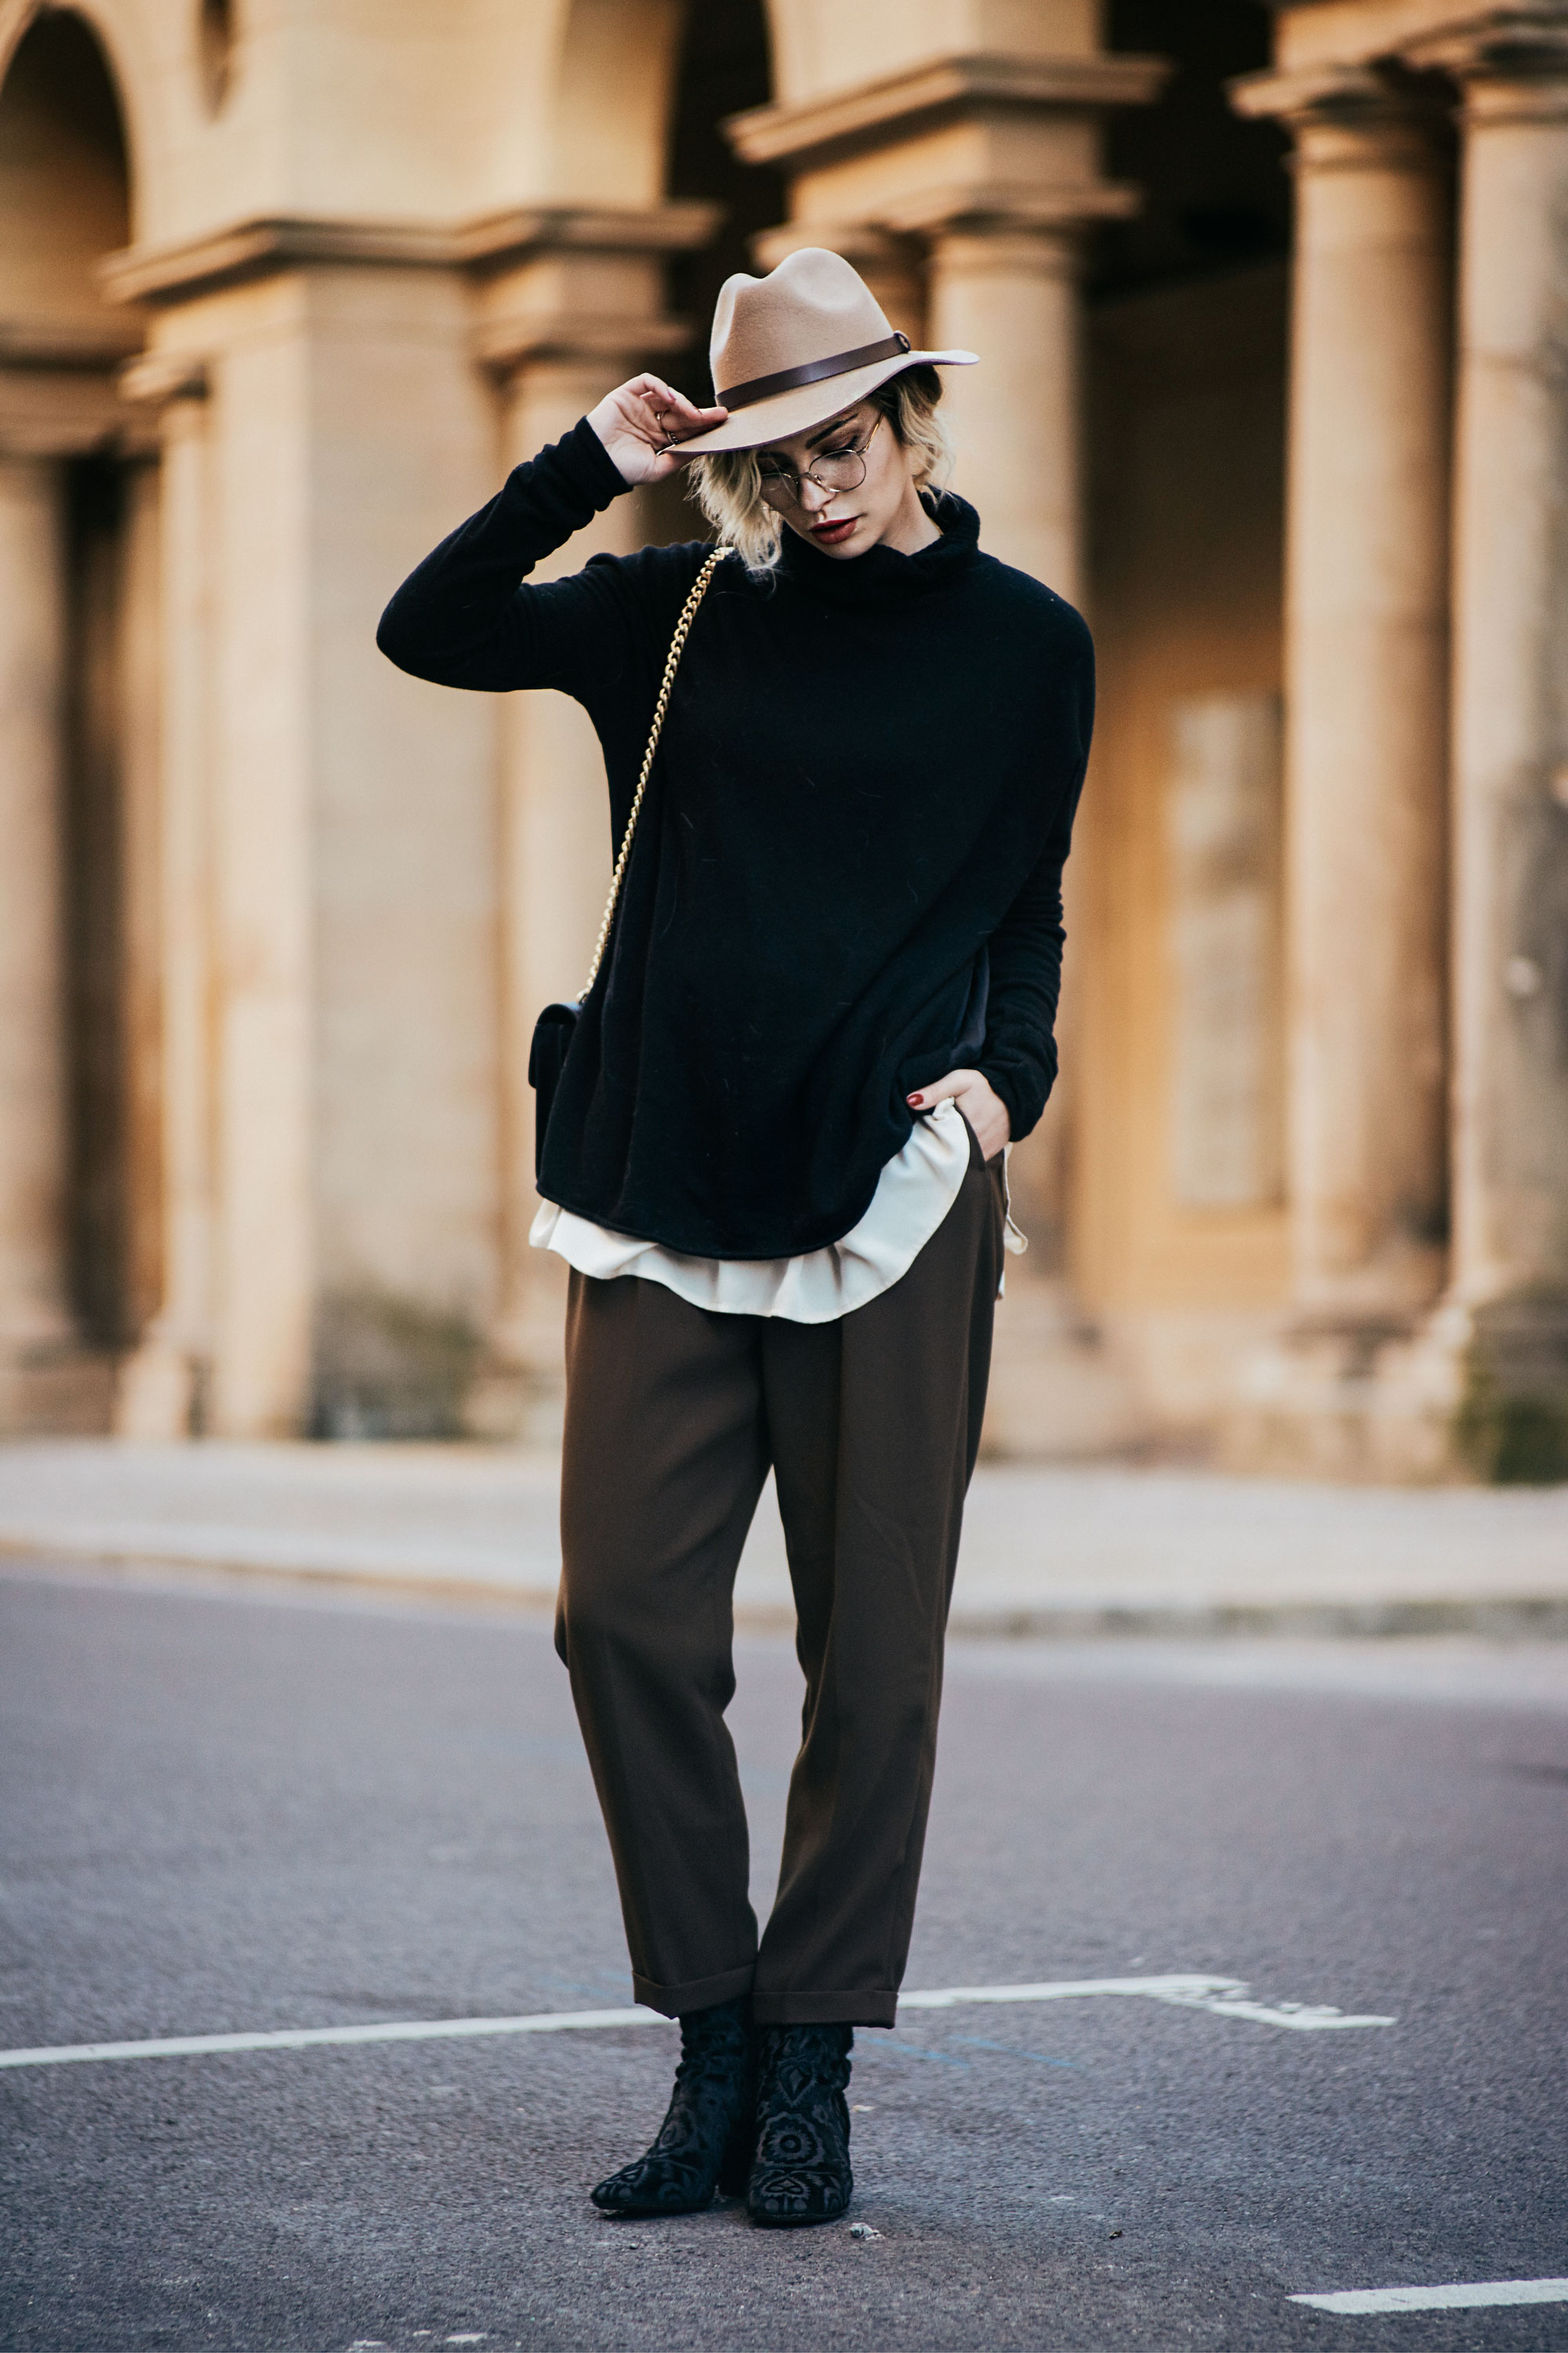 Masha Sedgwick | Blog | Germany | Berlin | Outfit | Dandy | Essentials | Black Friday